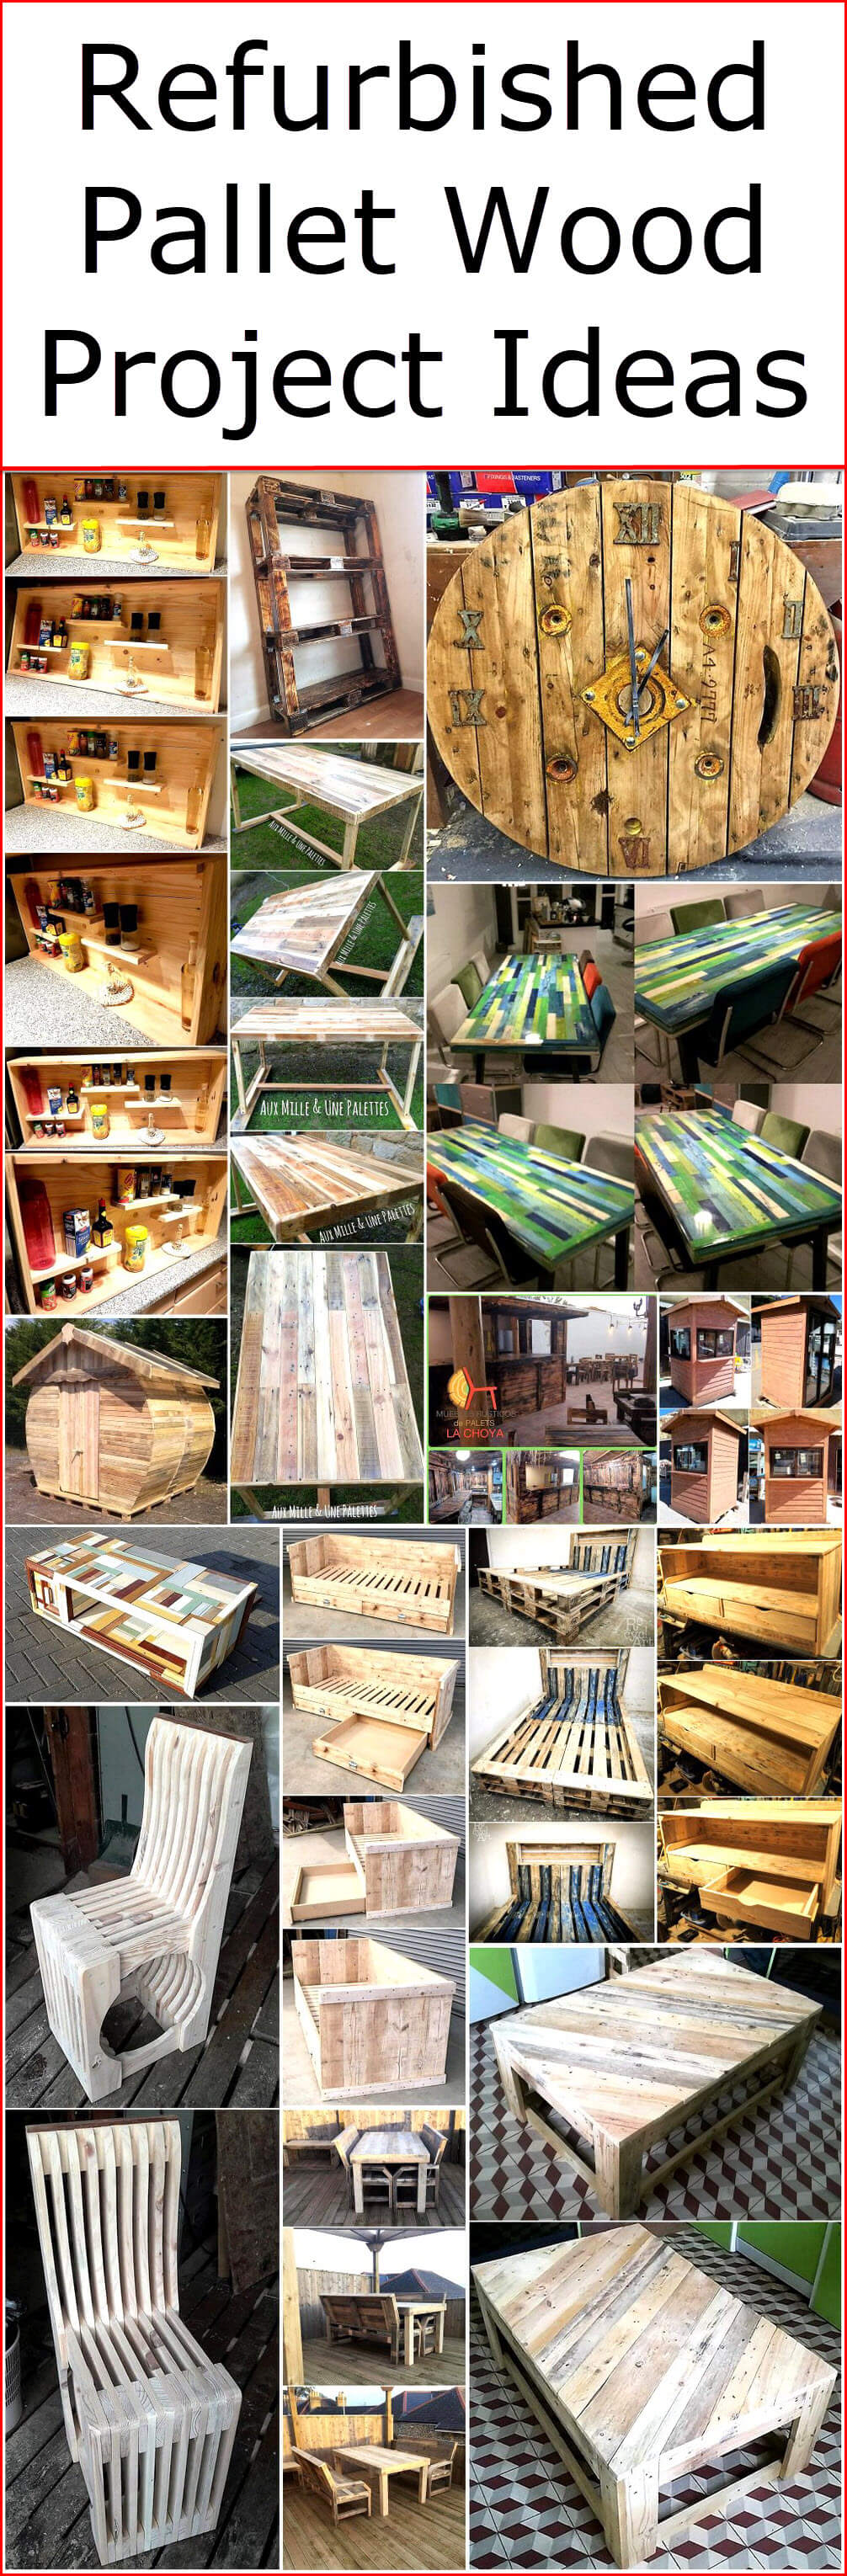 Refurbished Pallet Wood Project Ideas